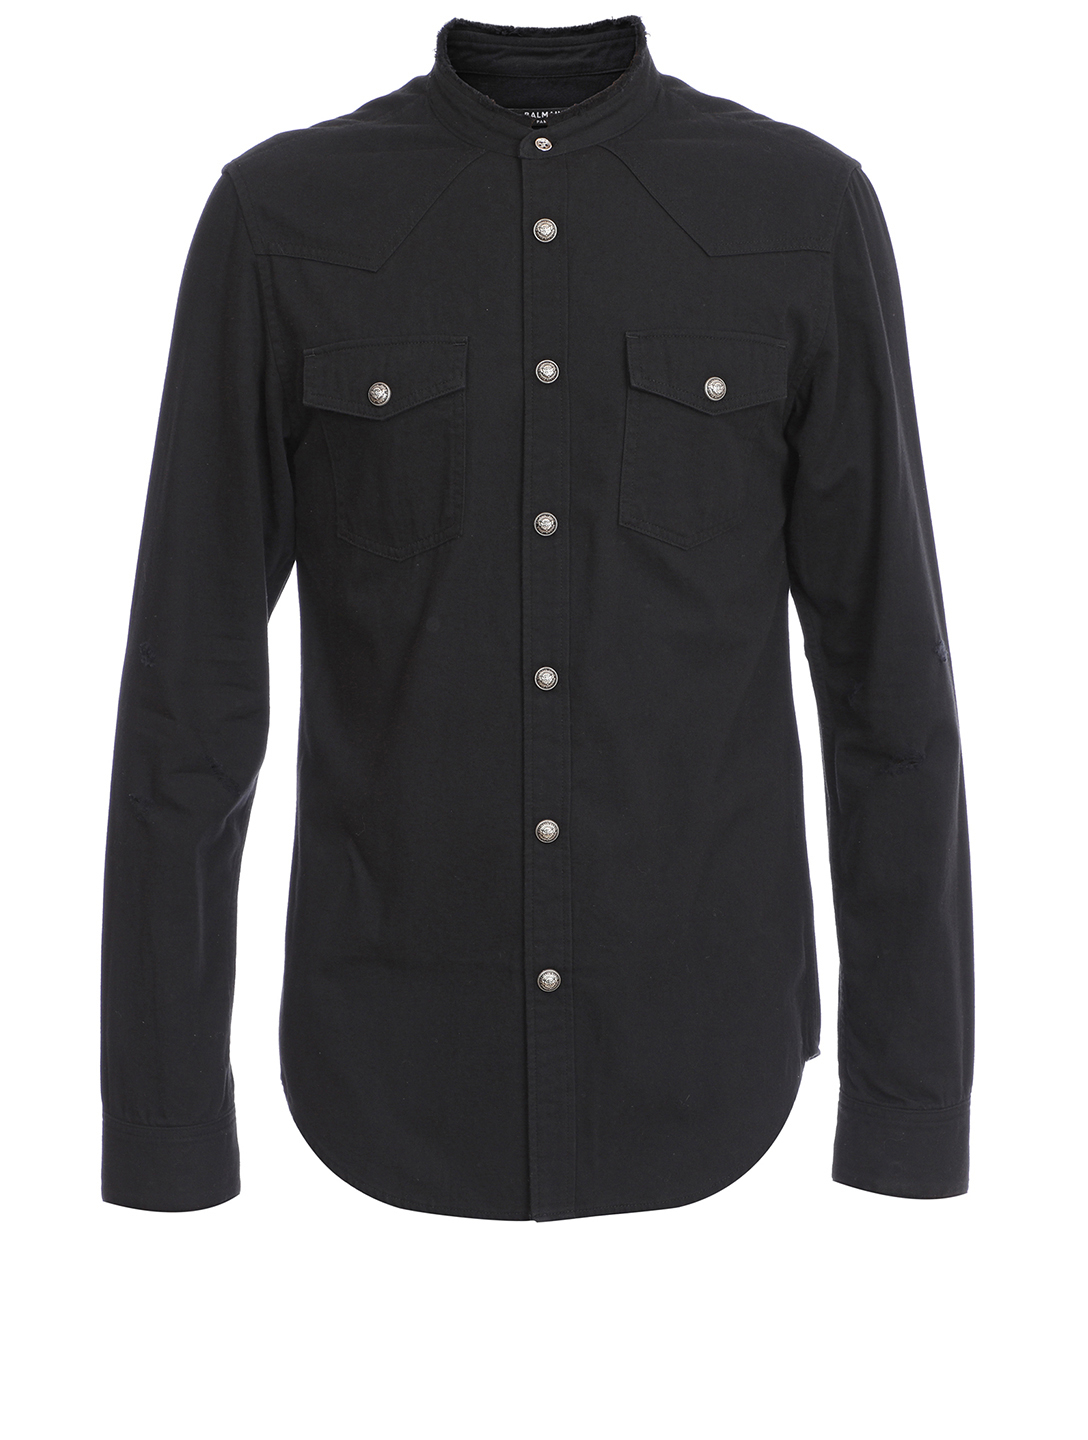 BALMAIN Denim Shirt With Flocked Logo Men's Black